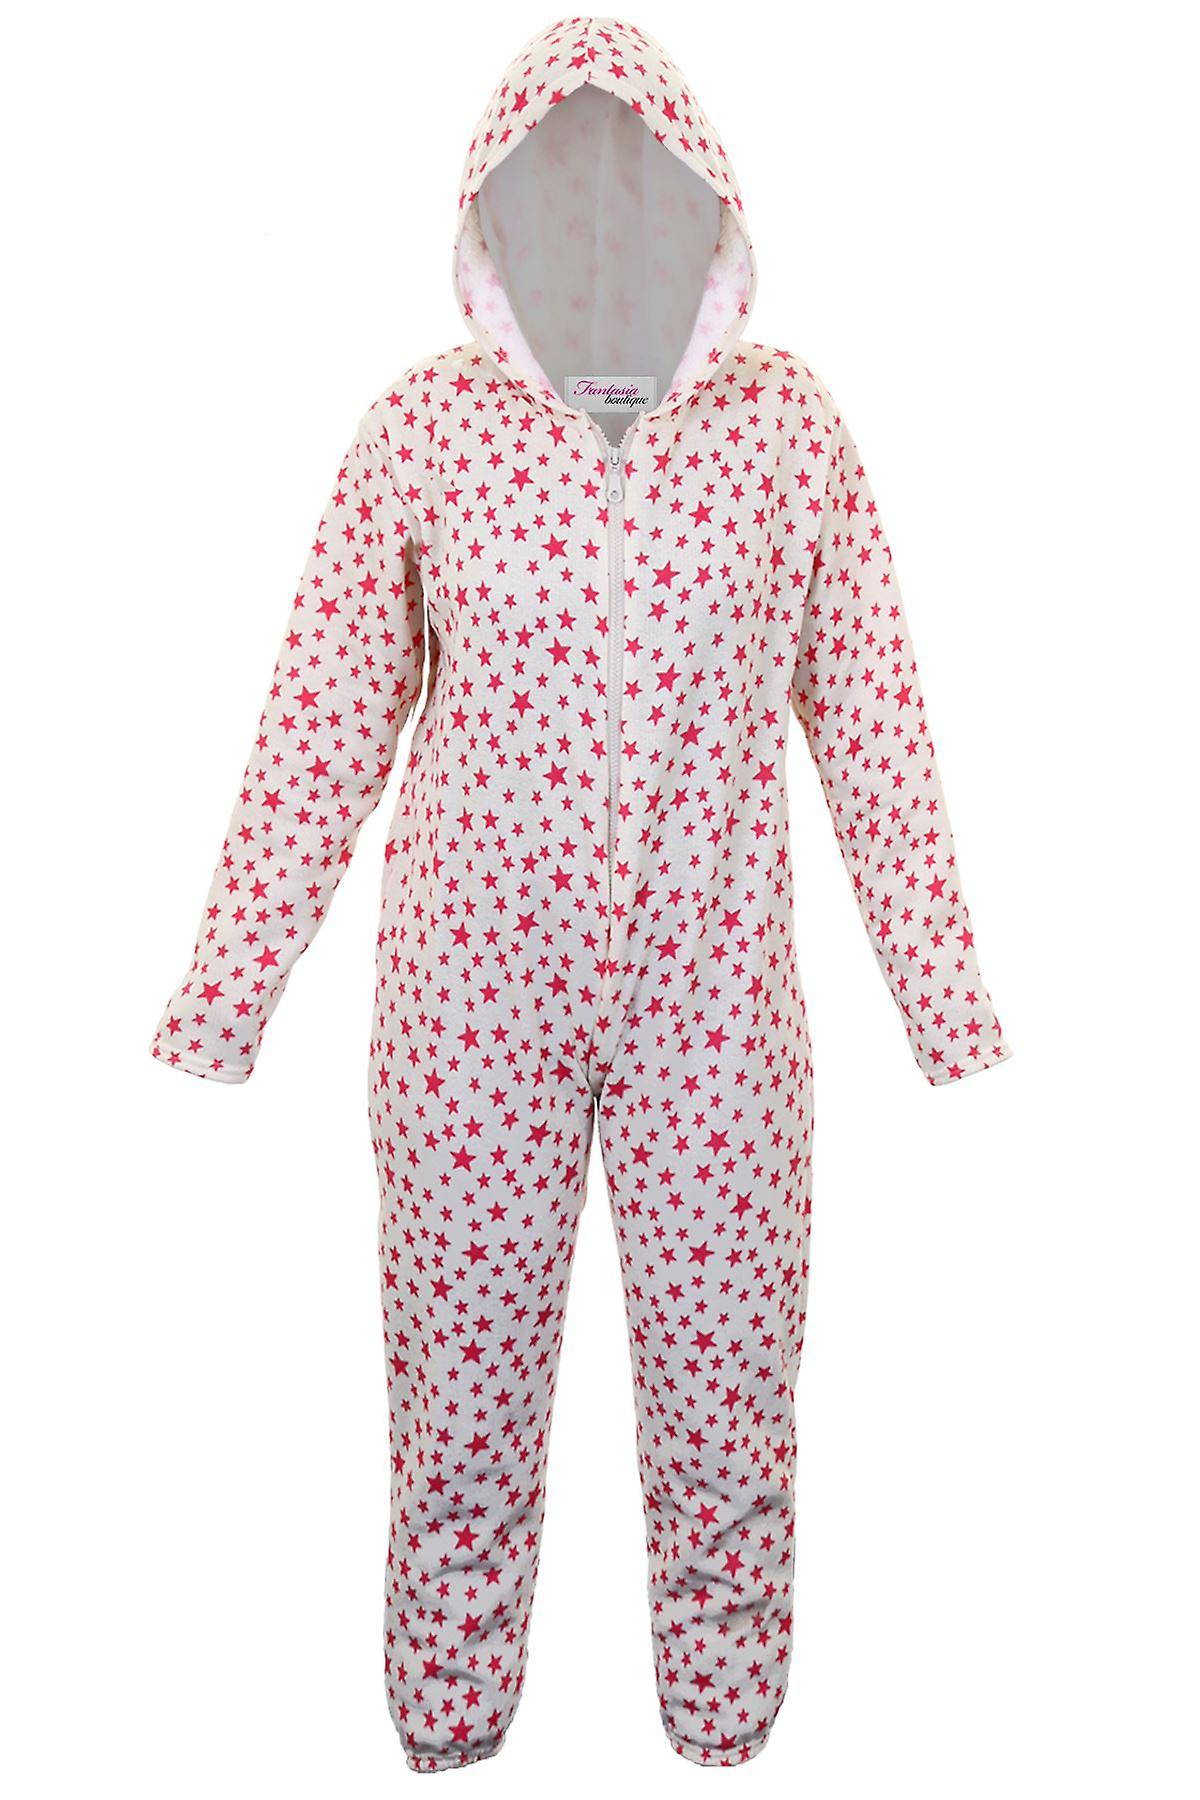 Girls Star Print Zip Front Comfy Children's Hooded All In One Sleepsuit Onsie